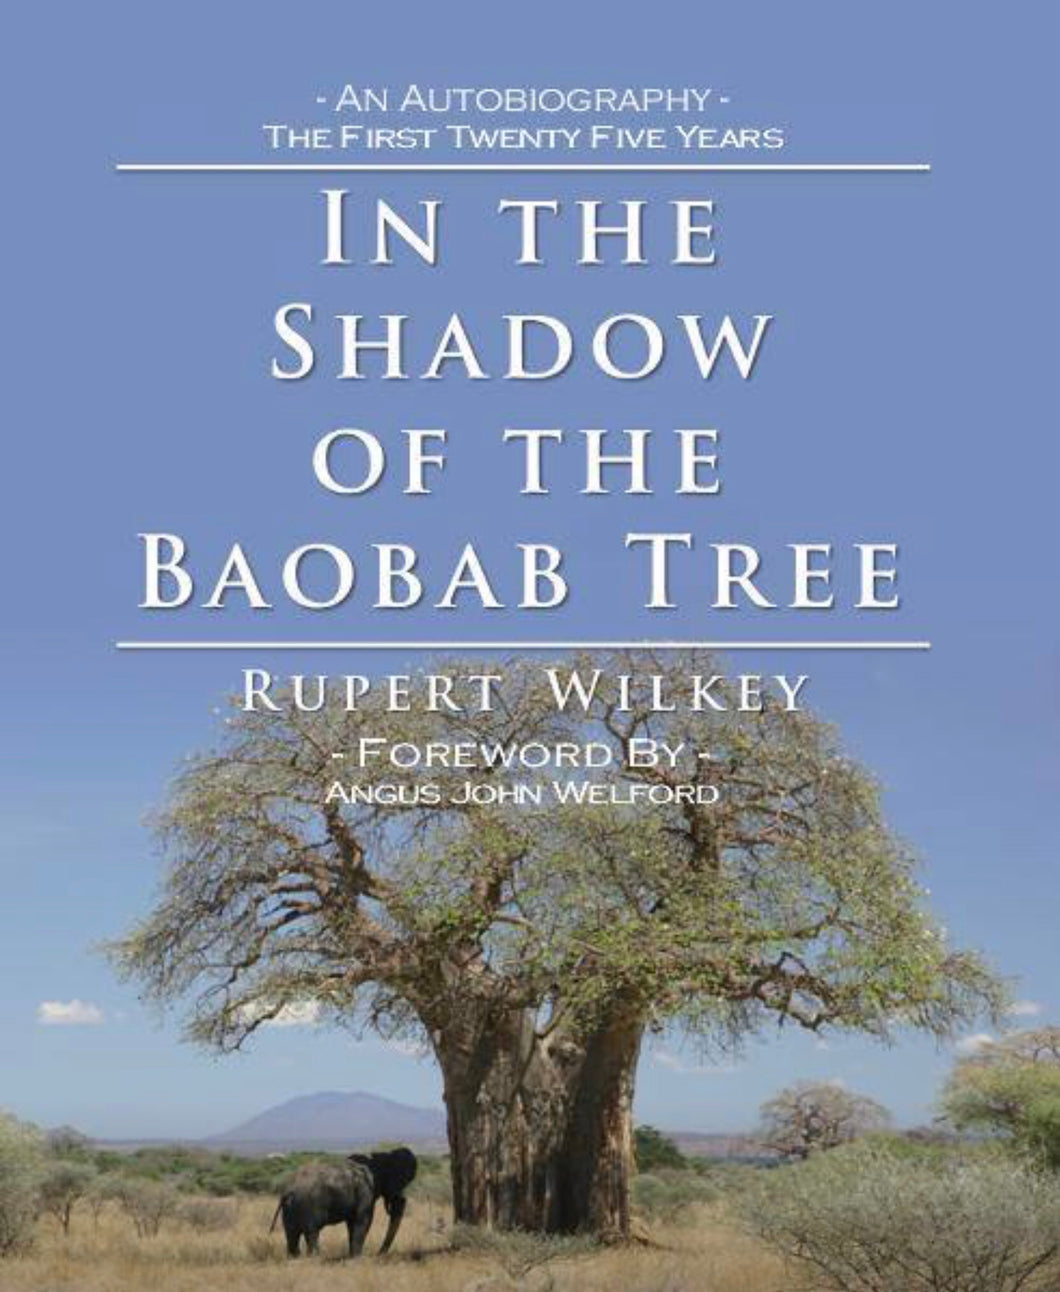 In the Shadow of the Baobab Tree